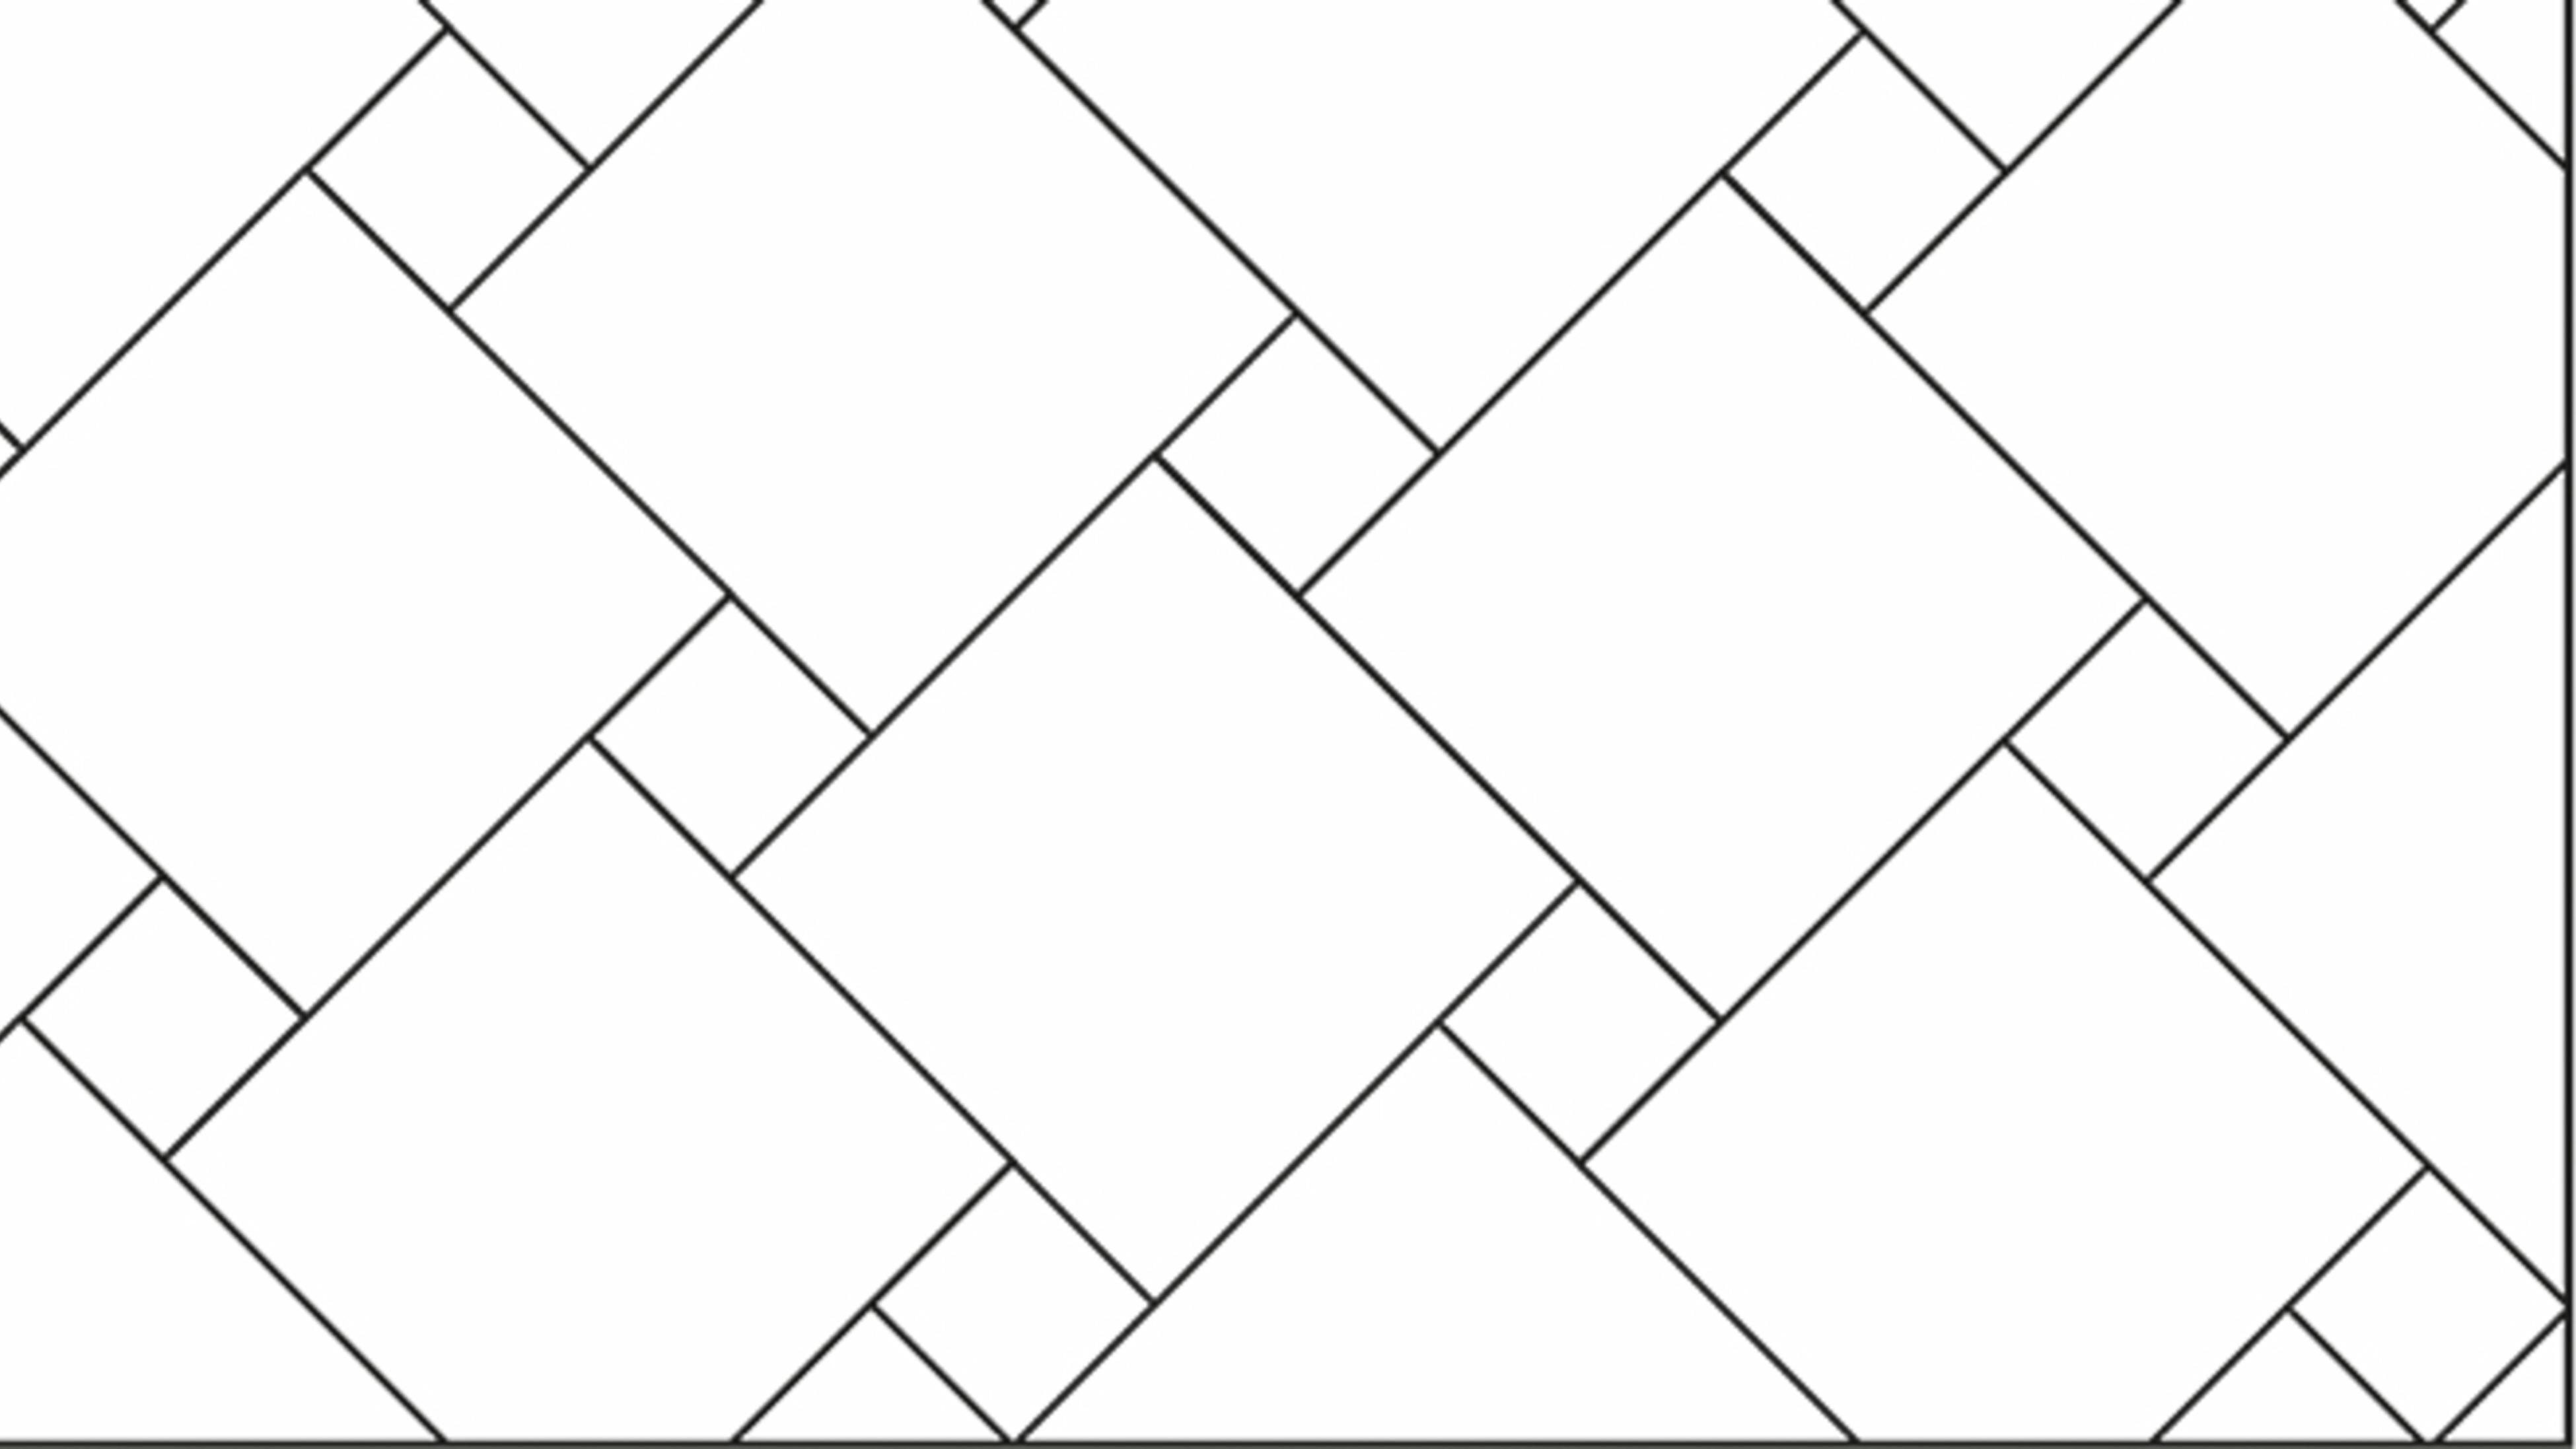 10 tile patterns you need to know